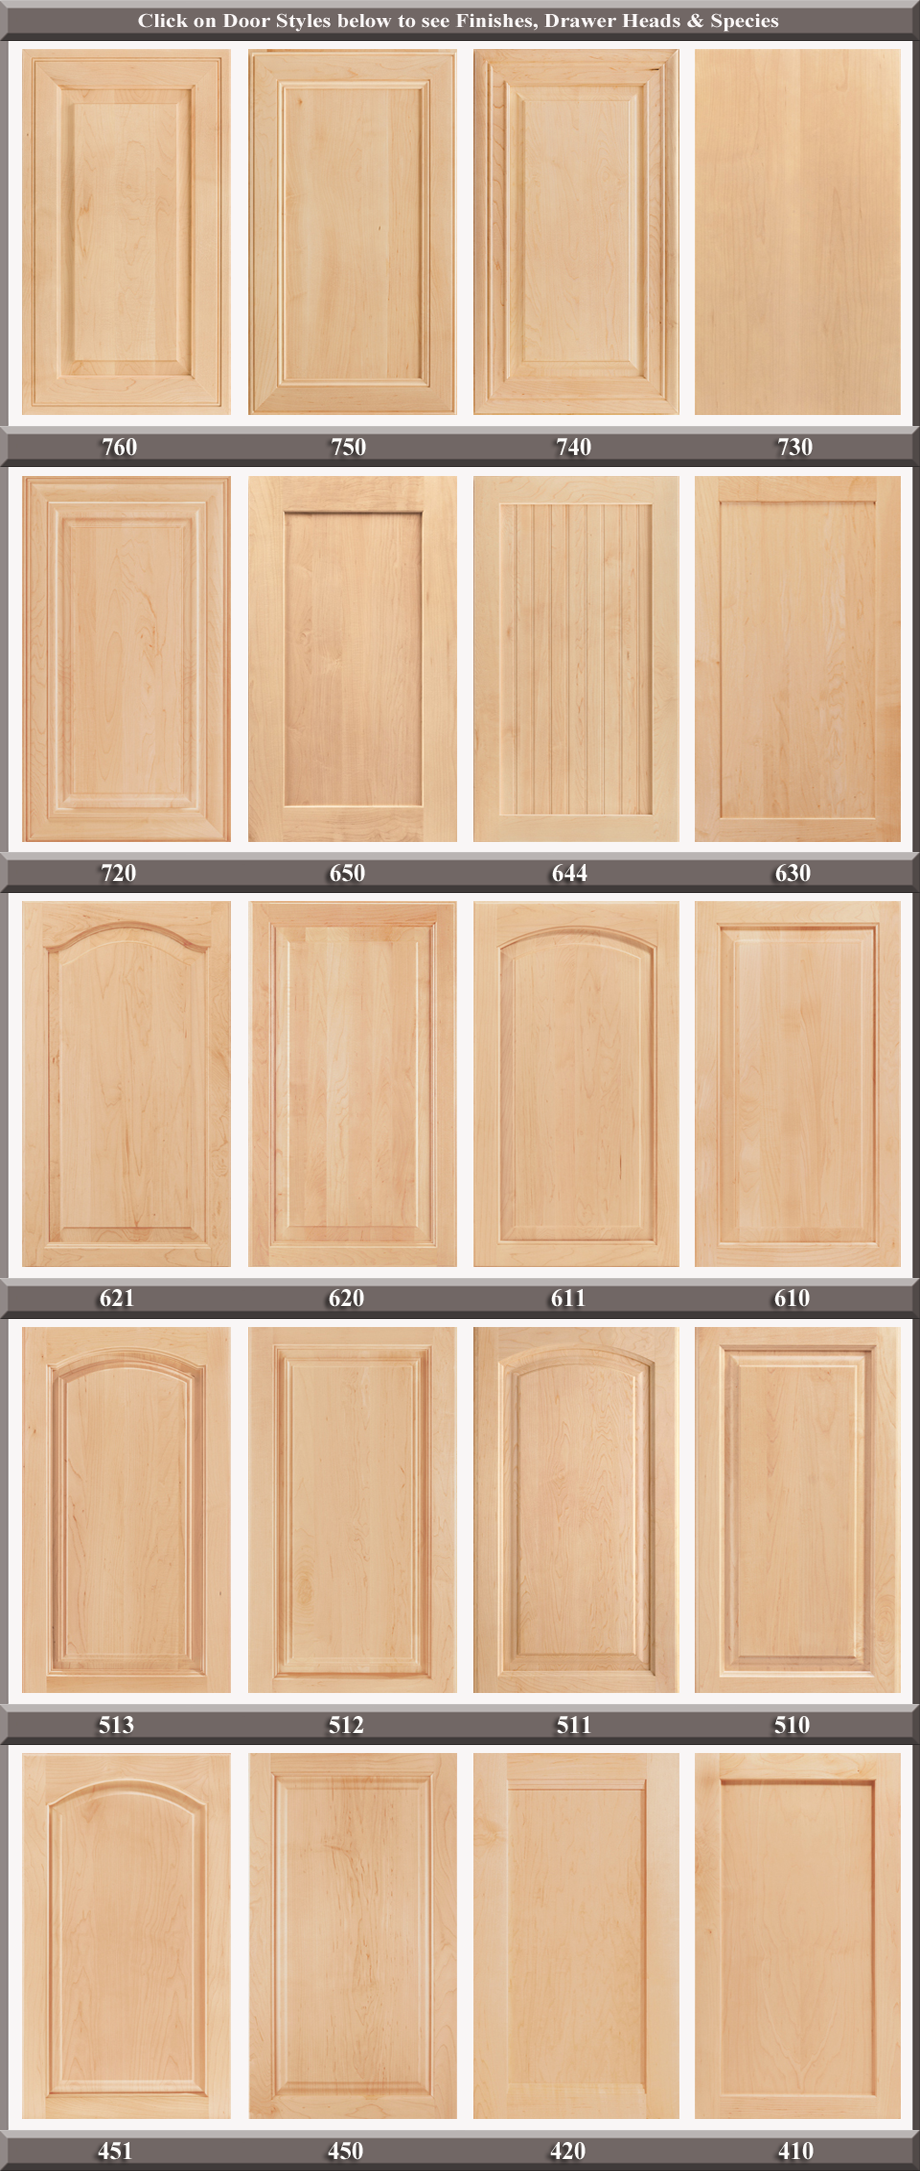 popular cabinet door styles finishes kitchen cabinet door styles Popular Cabinet Door Styles Finishes